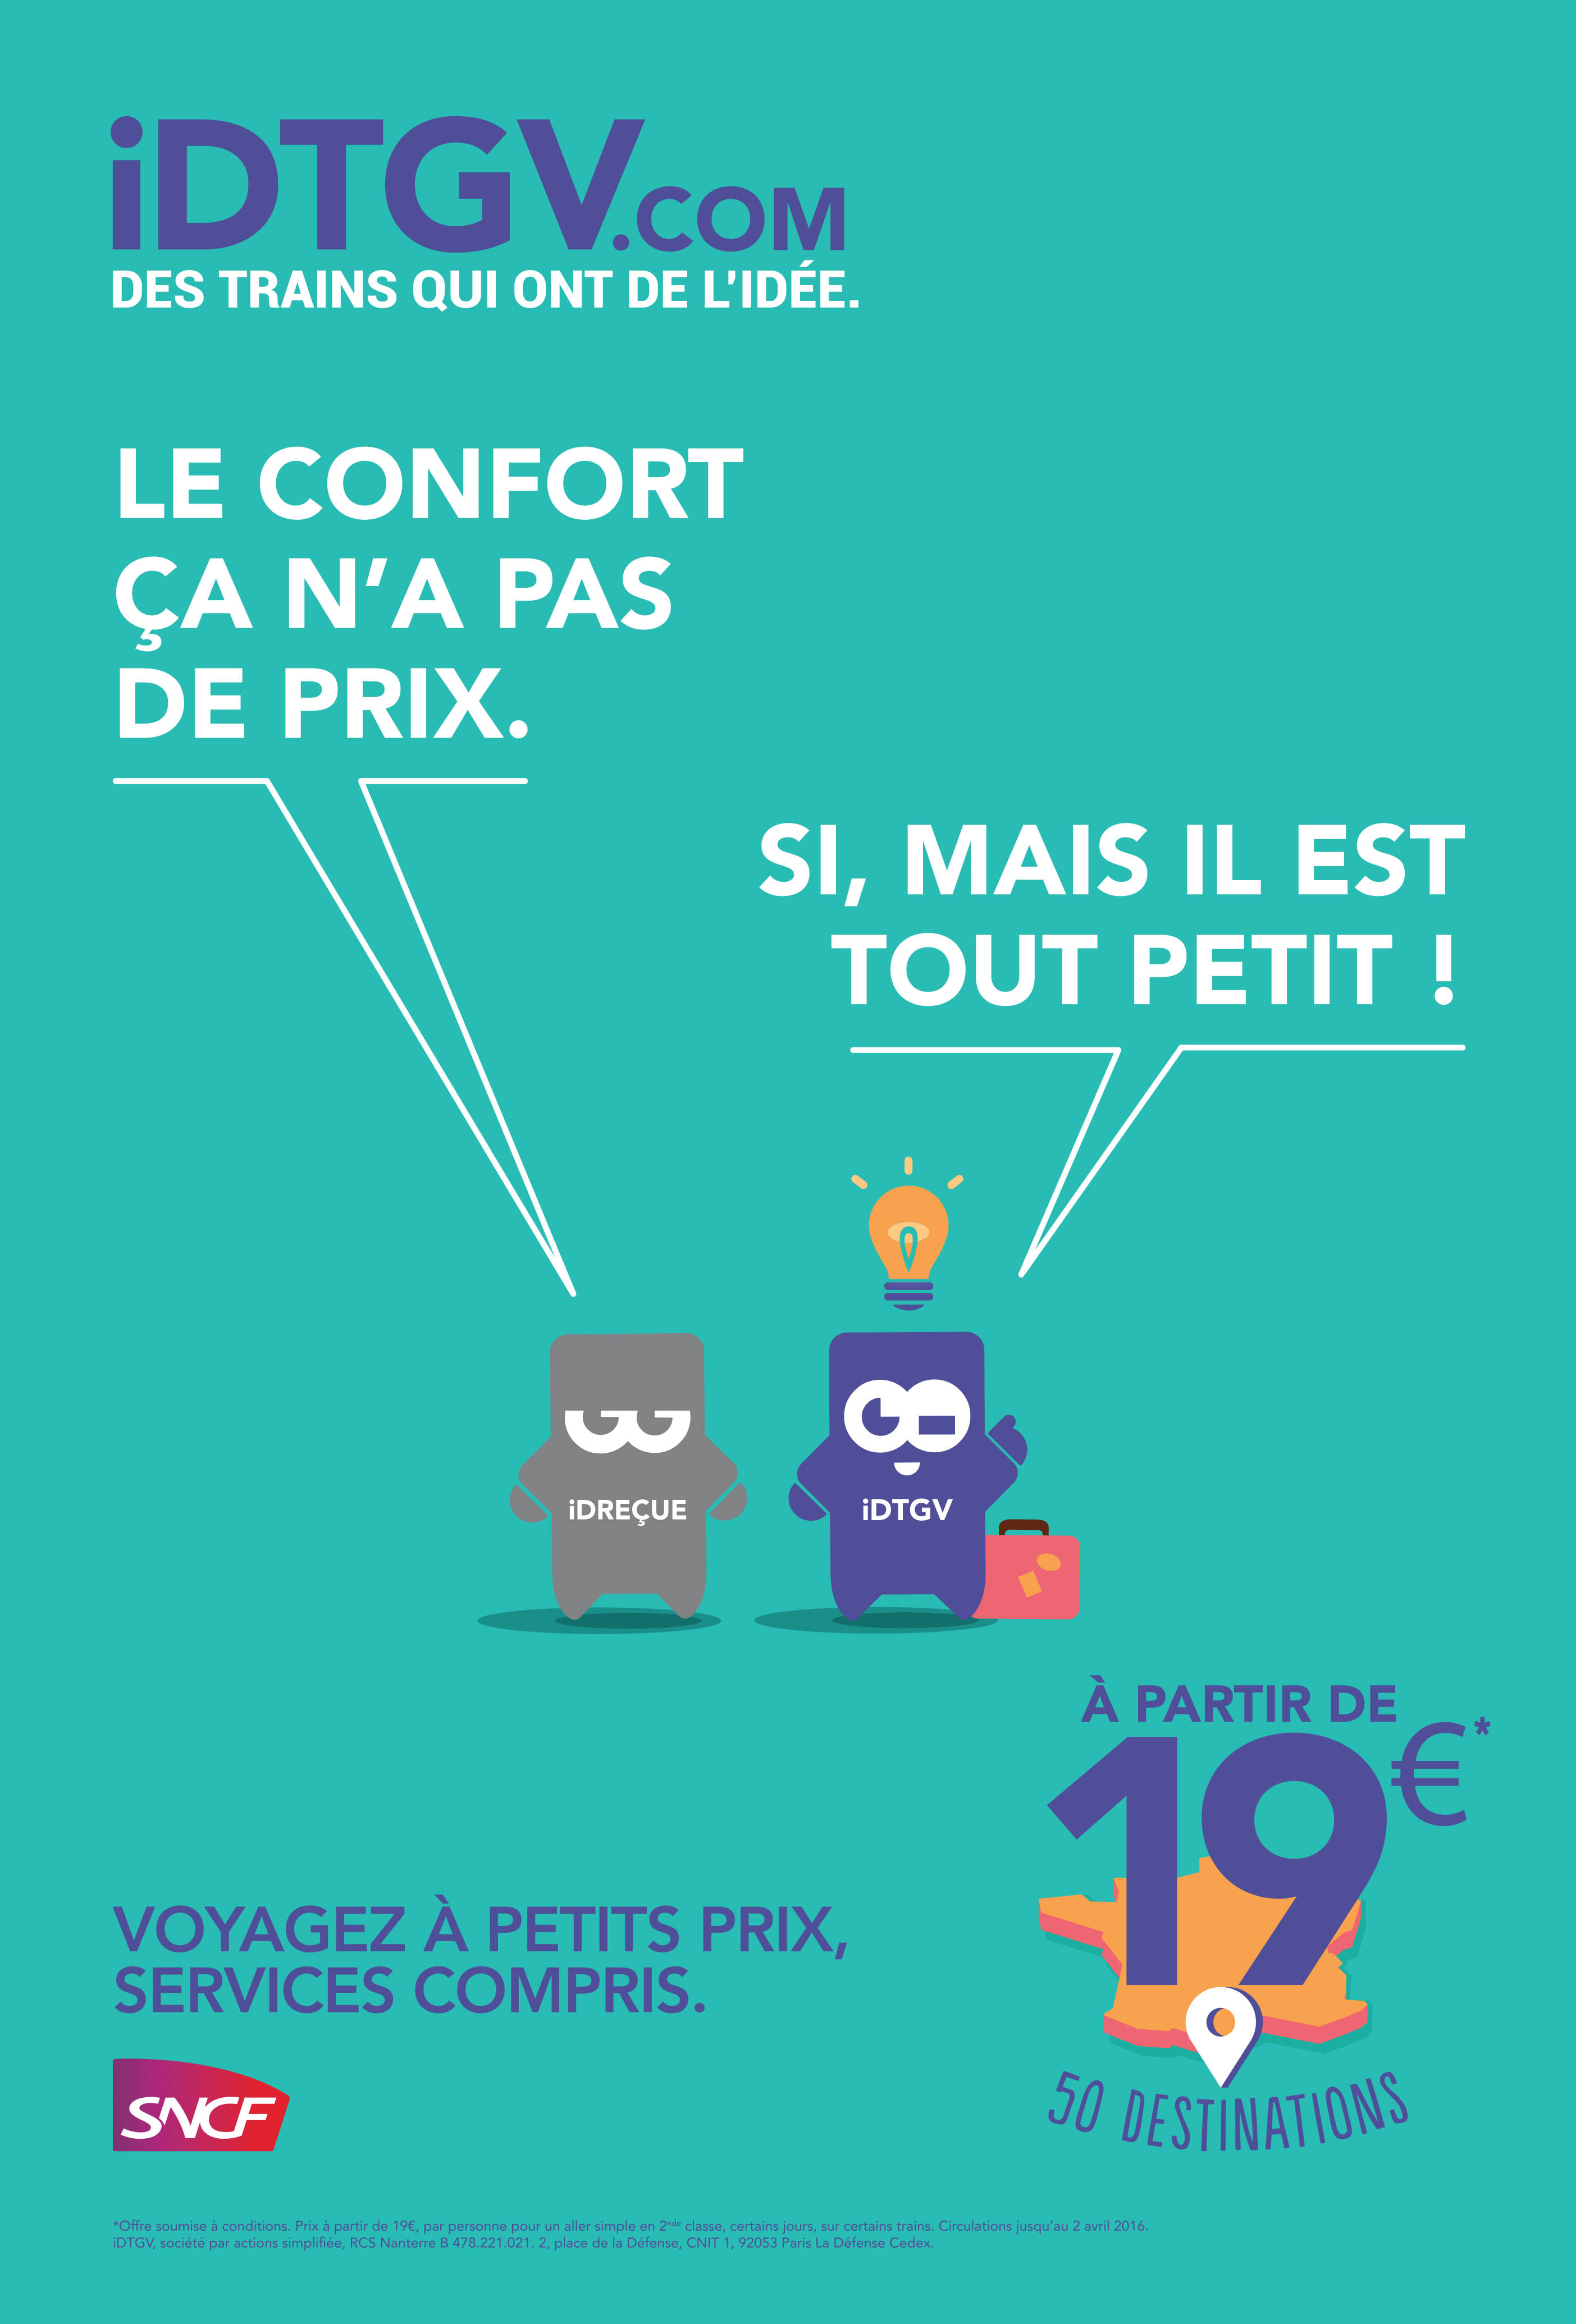 id-tgv-publicité-marketing-transport-idées-covoiturage-avion-confort-id-zen-id-zap-tbwa-paris-3